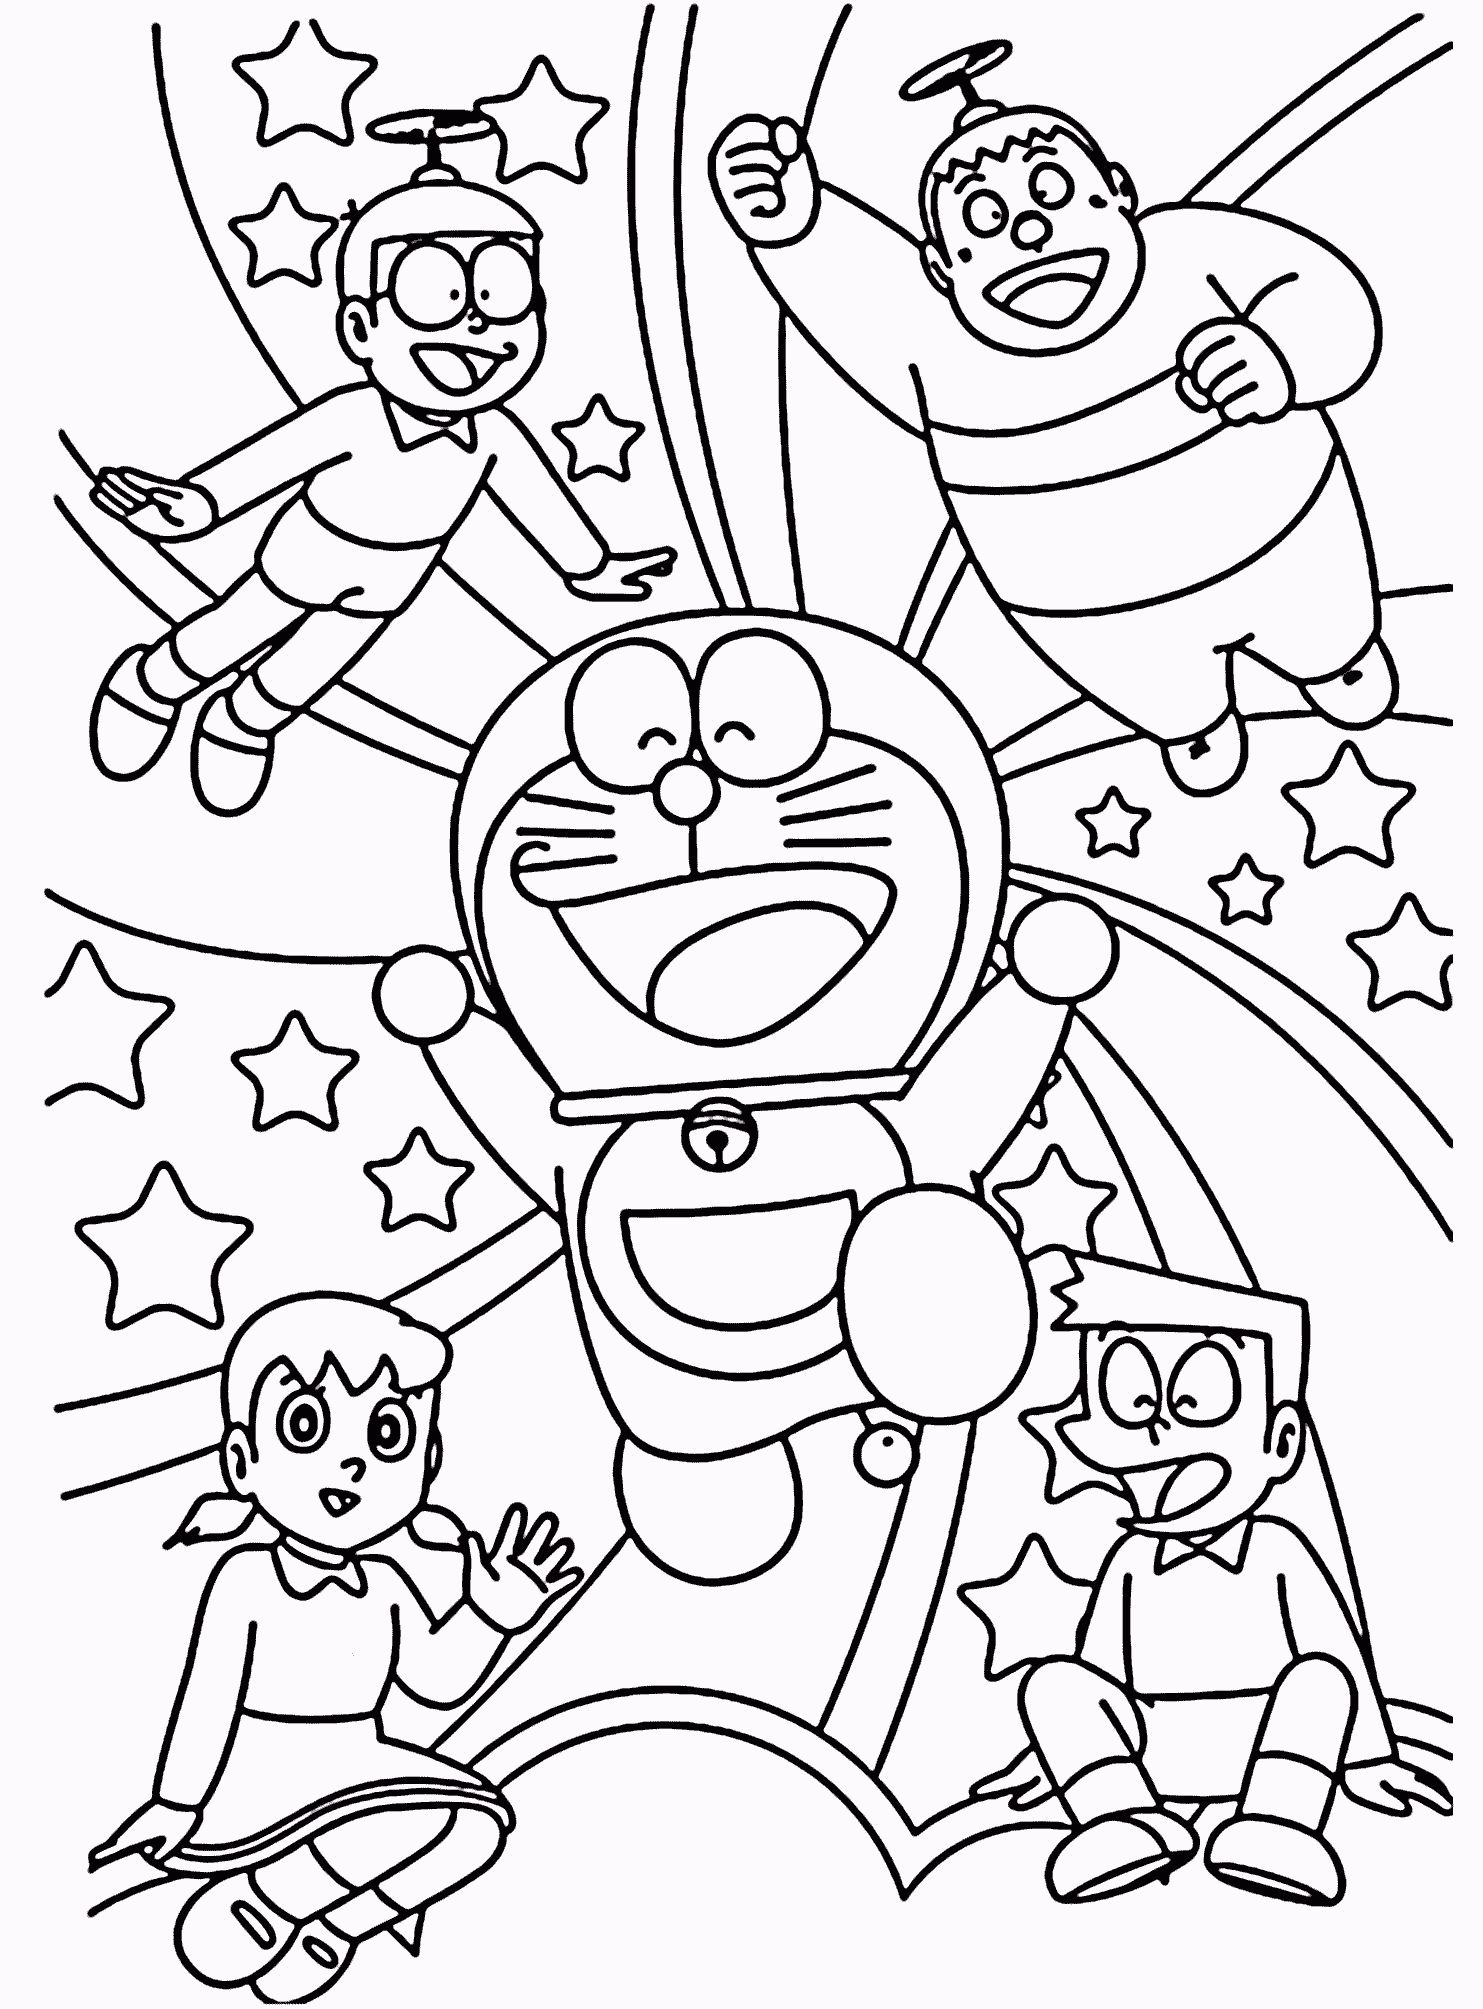 Doraemon Coloring Book Pdf Coloring Pages Allow Kids To Accompany Their Favorite Characters On An A Toddler Coloring Book Coloring Books Love Coloring Pages